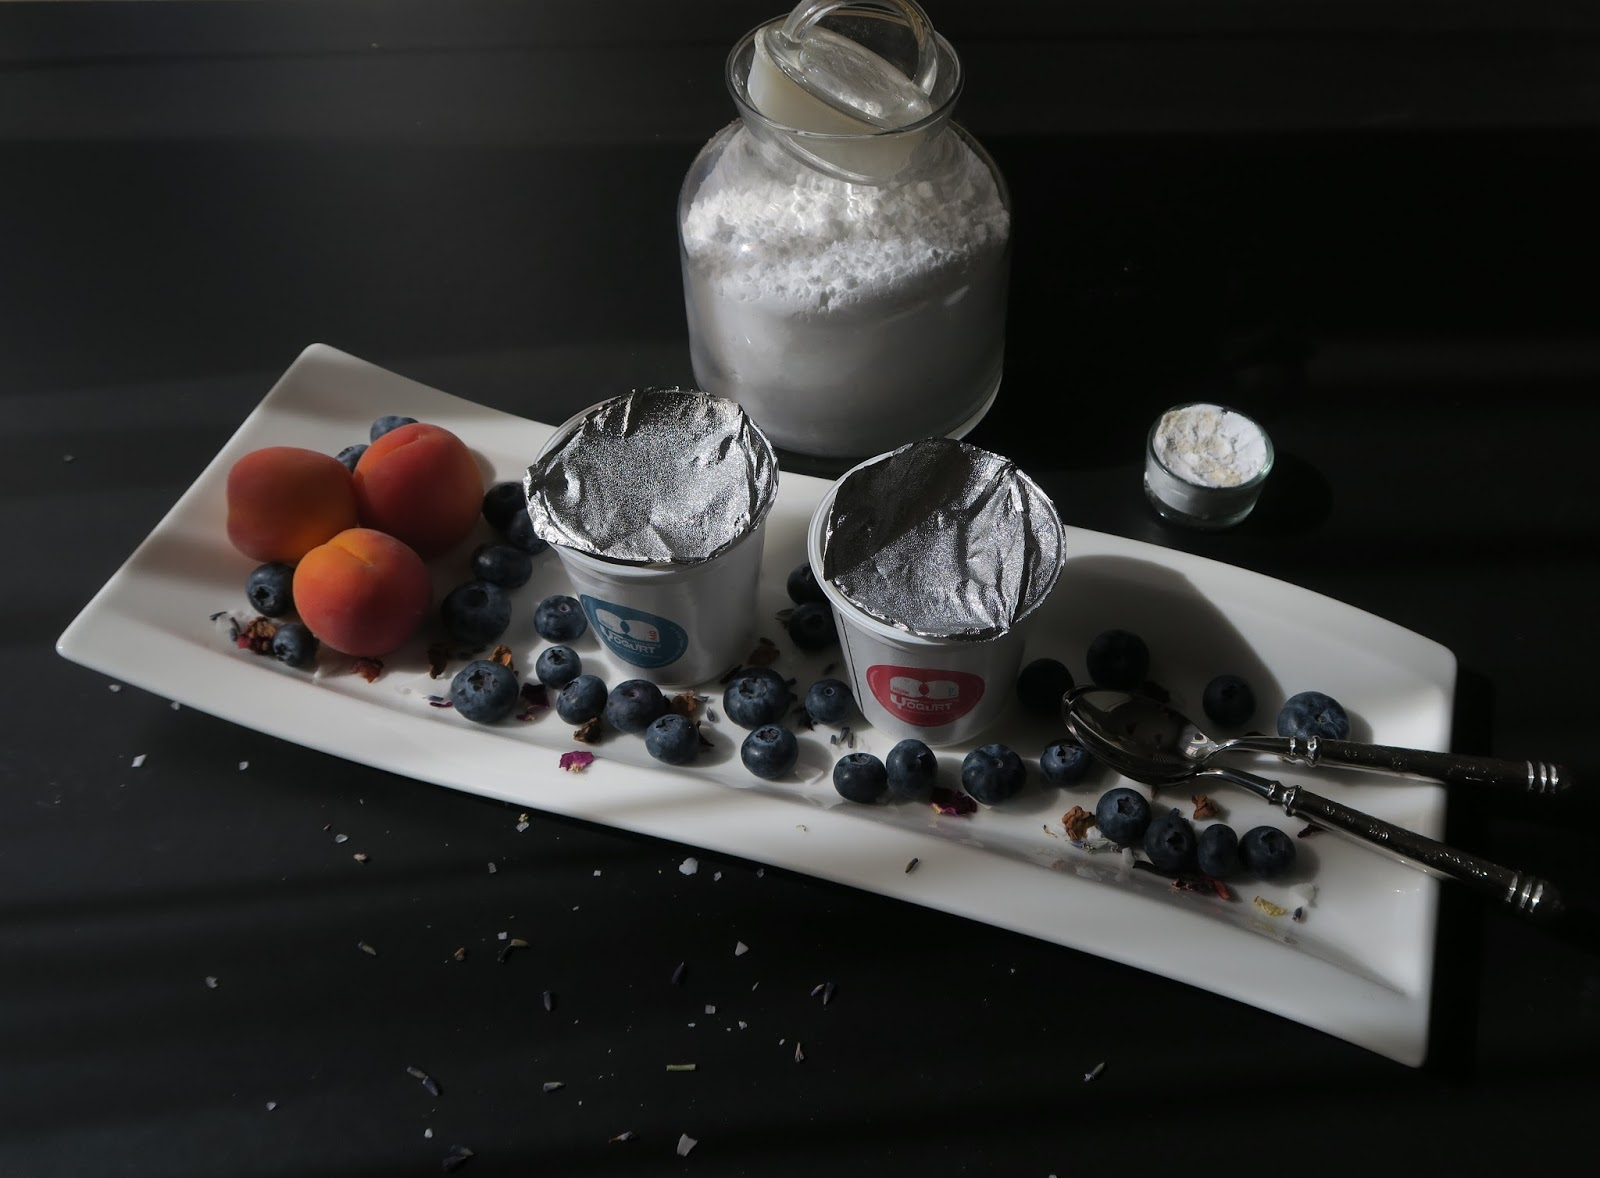 Foodstyling Home and Art